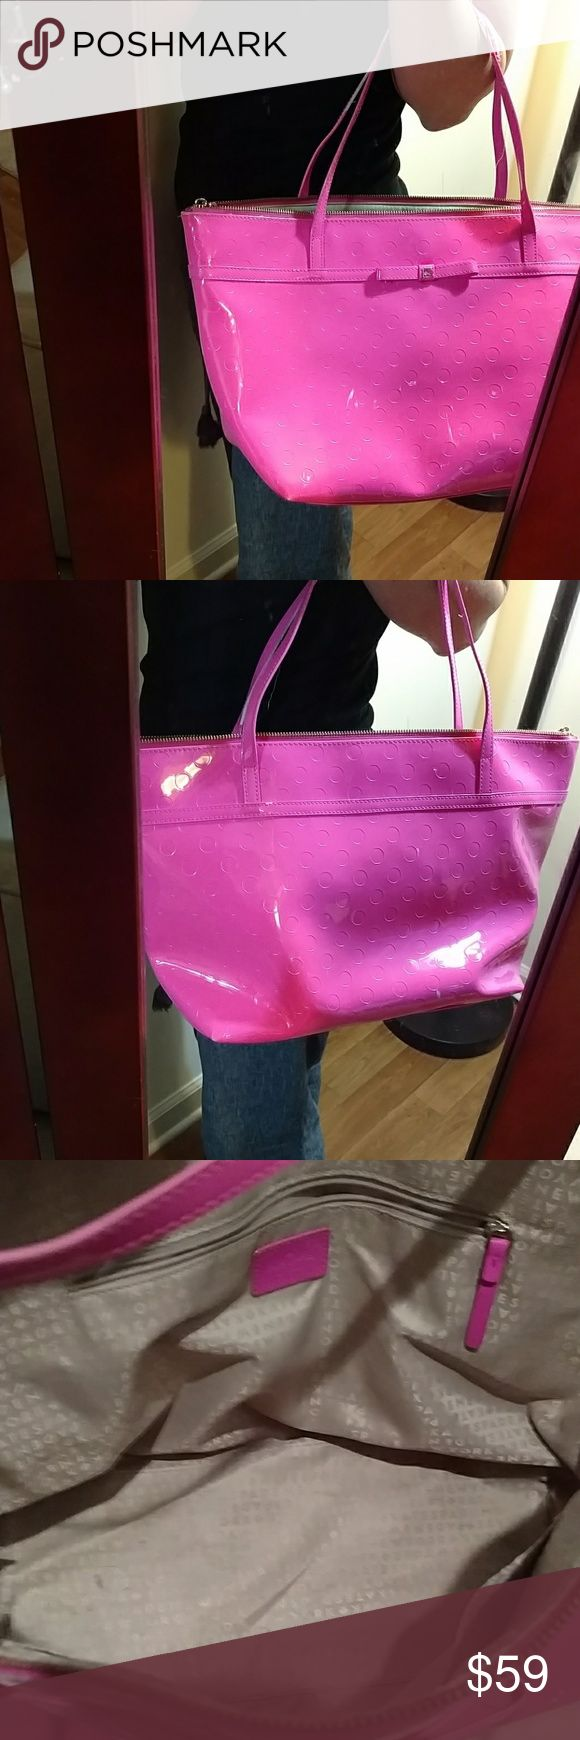 Kate spade bag Sale....Beautiful bright pink oversized kate spade bag. 100% authentic but in used condition. Does have a couple white marks and bottom has a stain. Handles are fraying from wear but still has life. I have marked to sell because of use.   Shoulder drop is 8 inches. Bag is 19 inches wide and 10 inches deep. Has 2 pouches on one side and a zipper slot on other side kate spade Bags Satchels